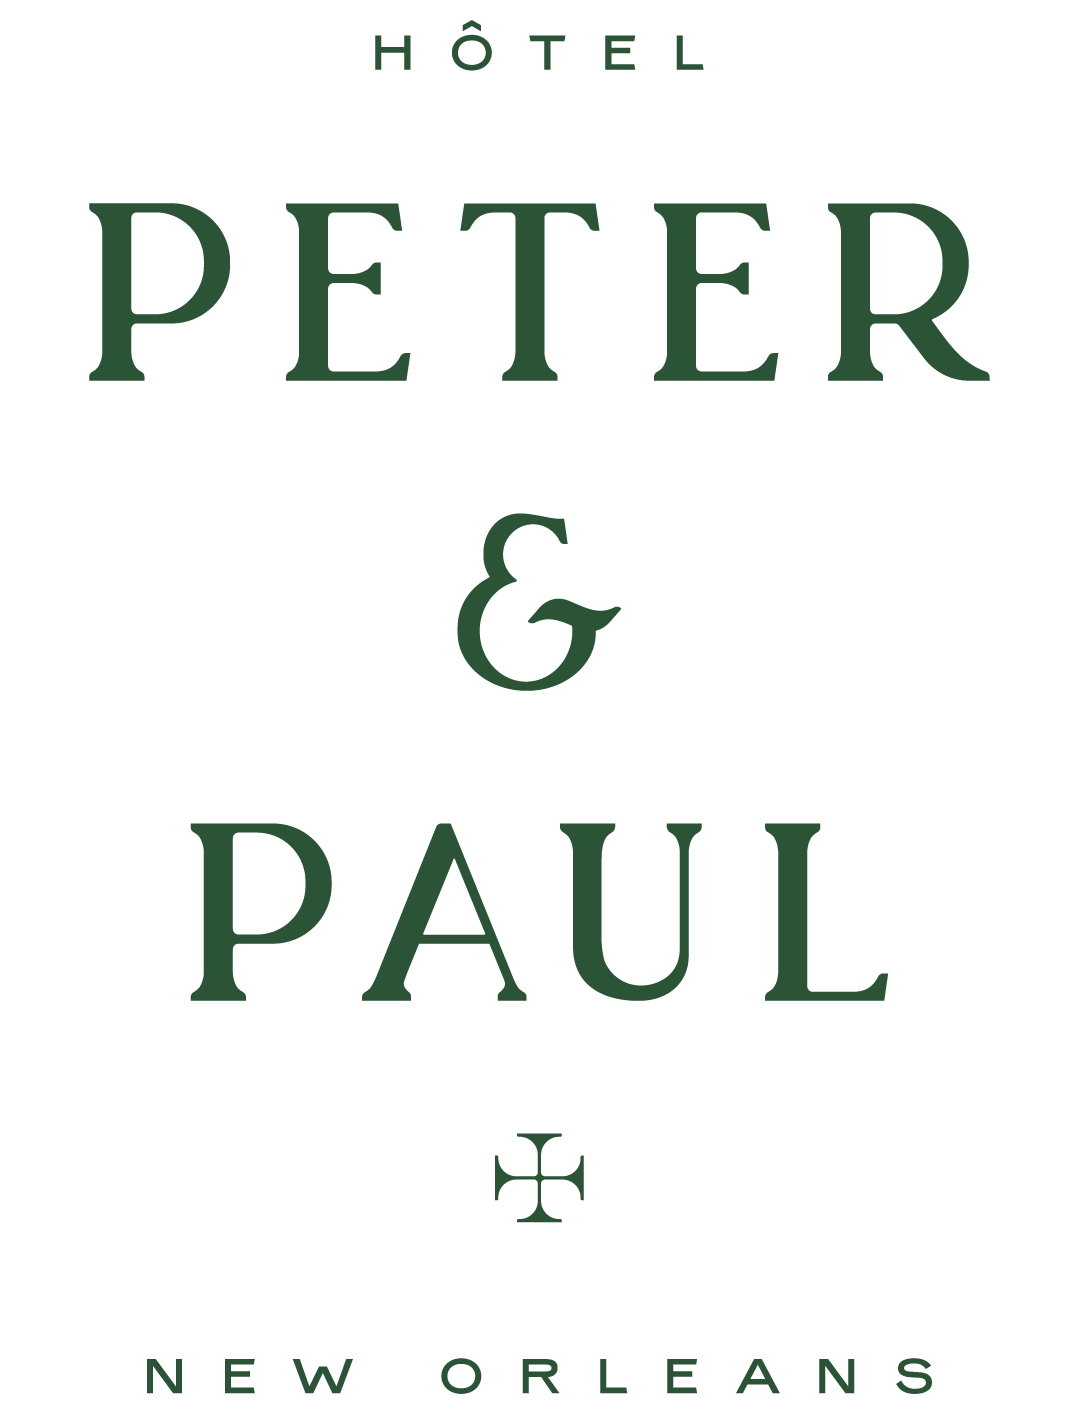 Hotel Peter and Paul